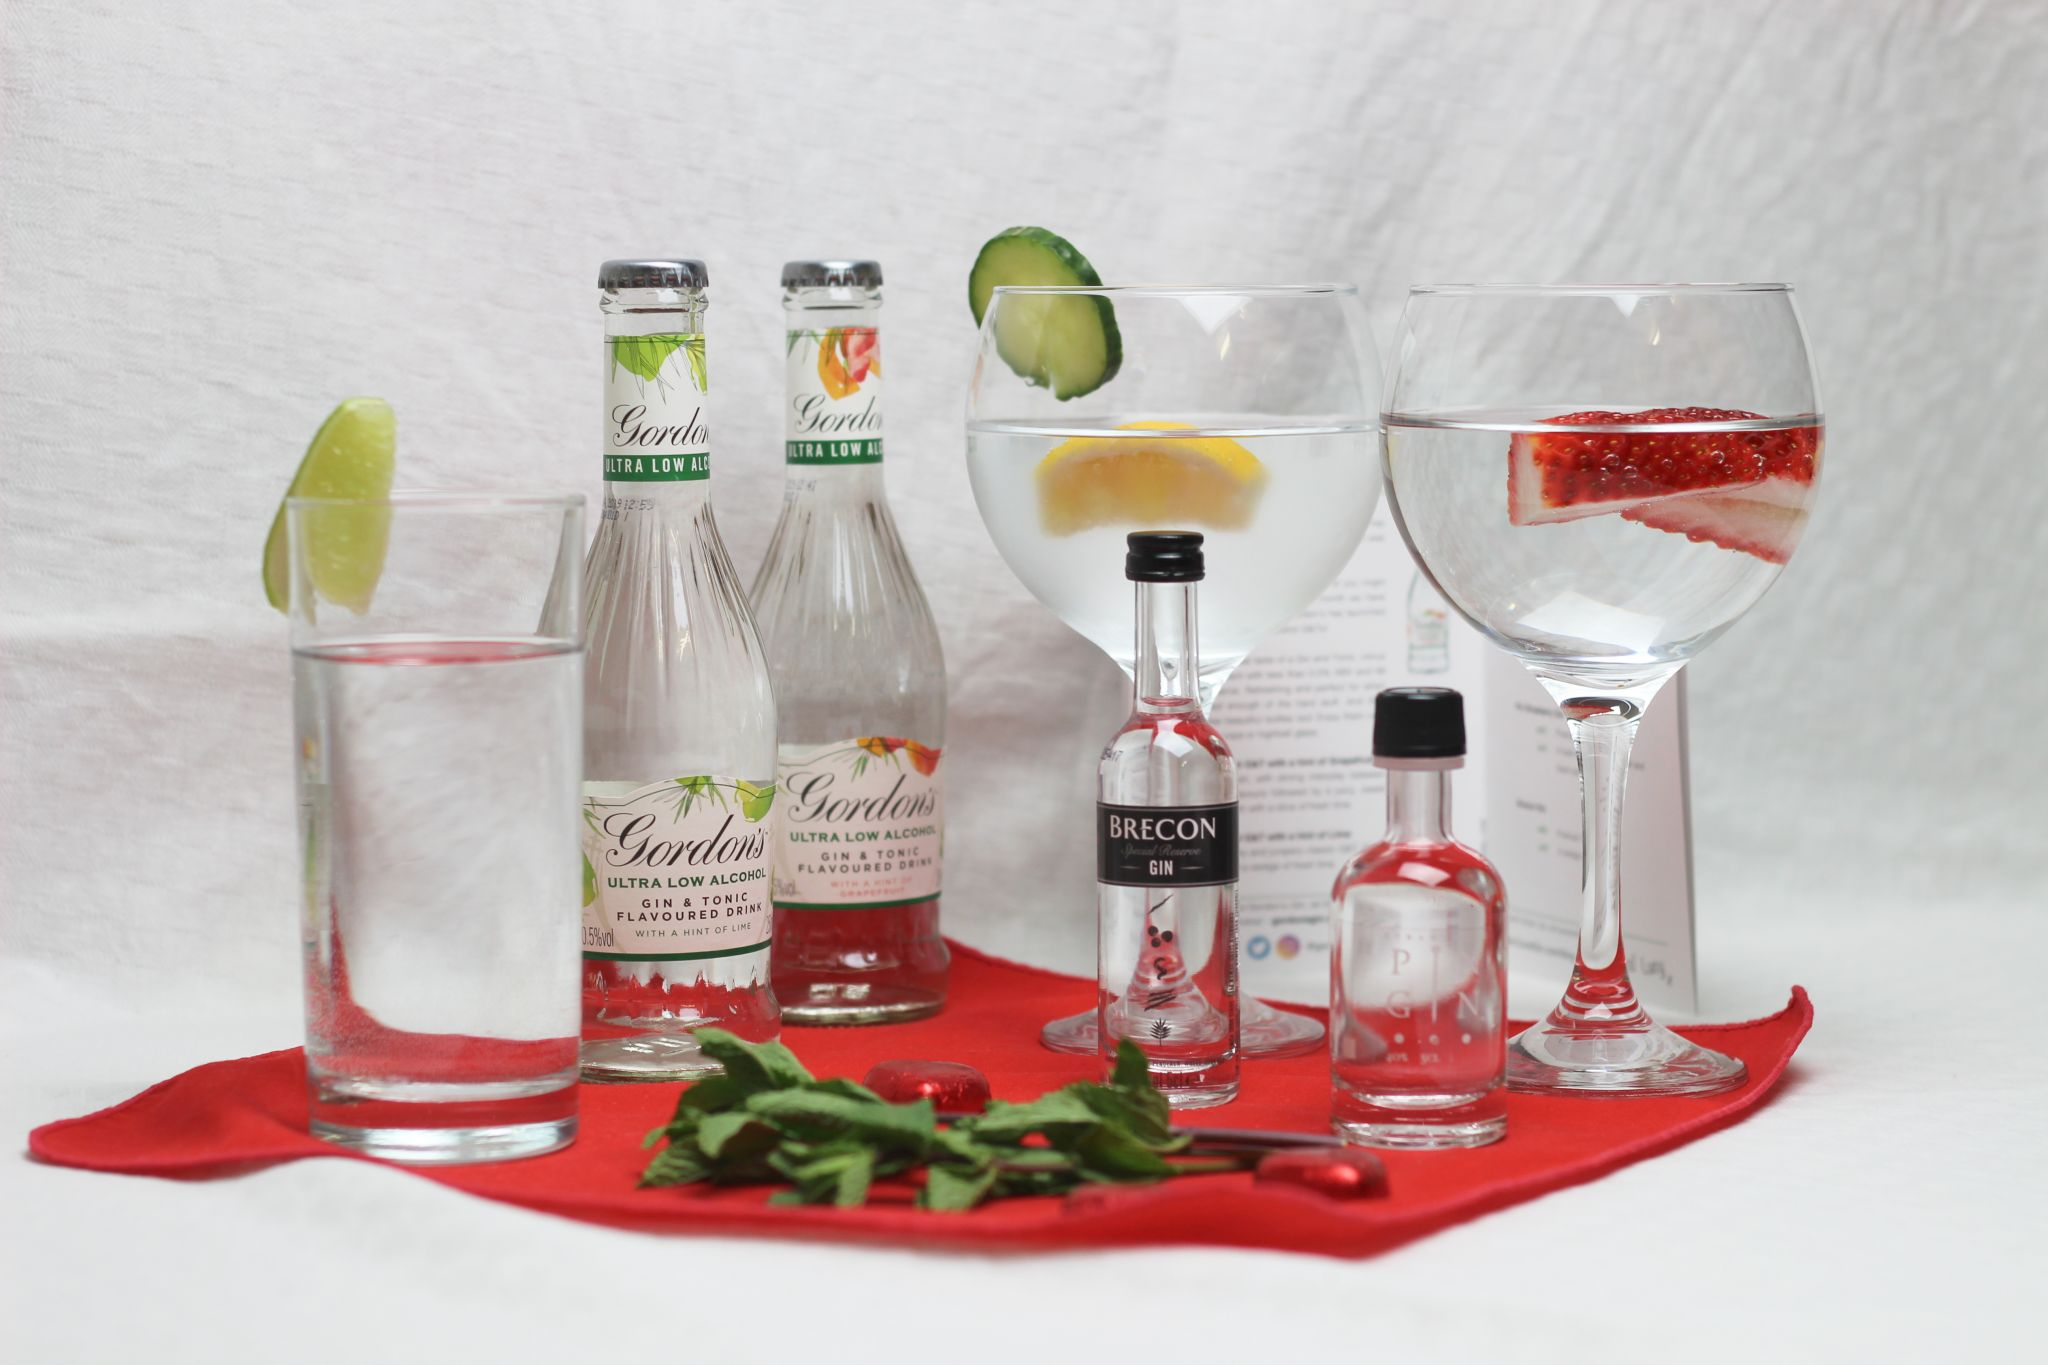 ILoveGin DryGINuary Box - Gordon's G&T bottles on a white background, two gin glasses and two bottles of gin